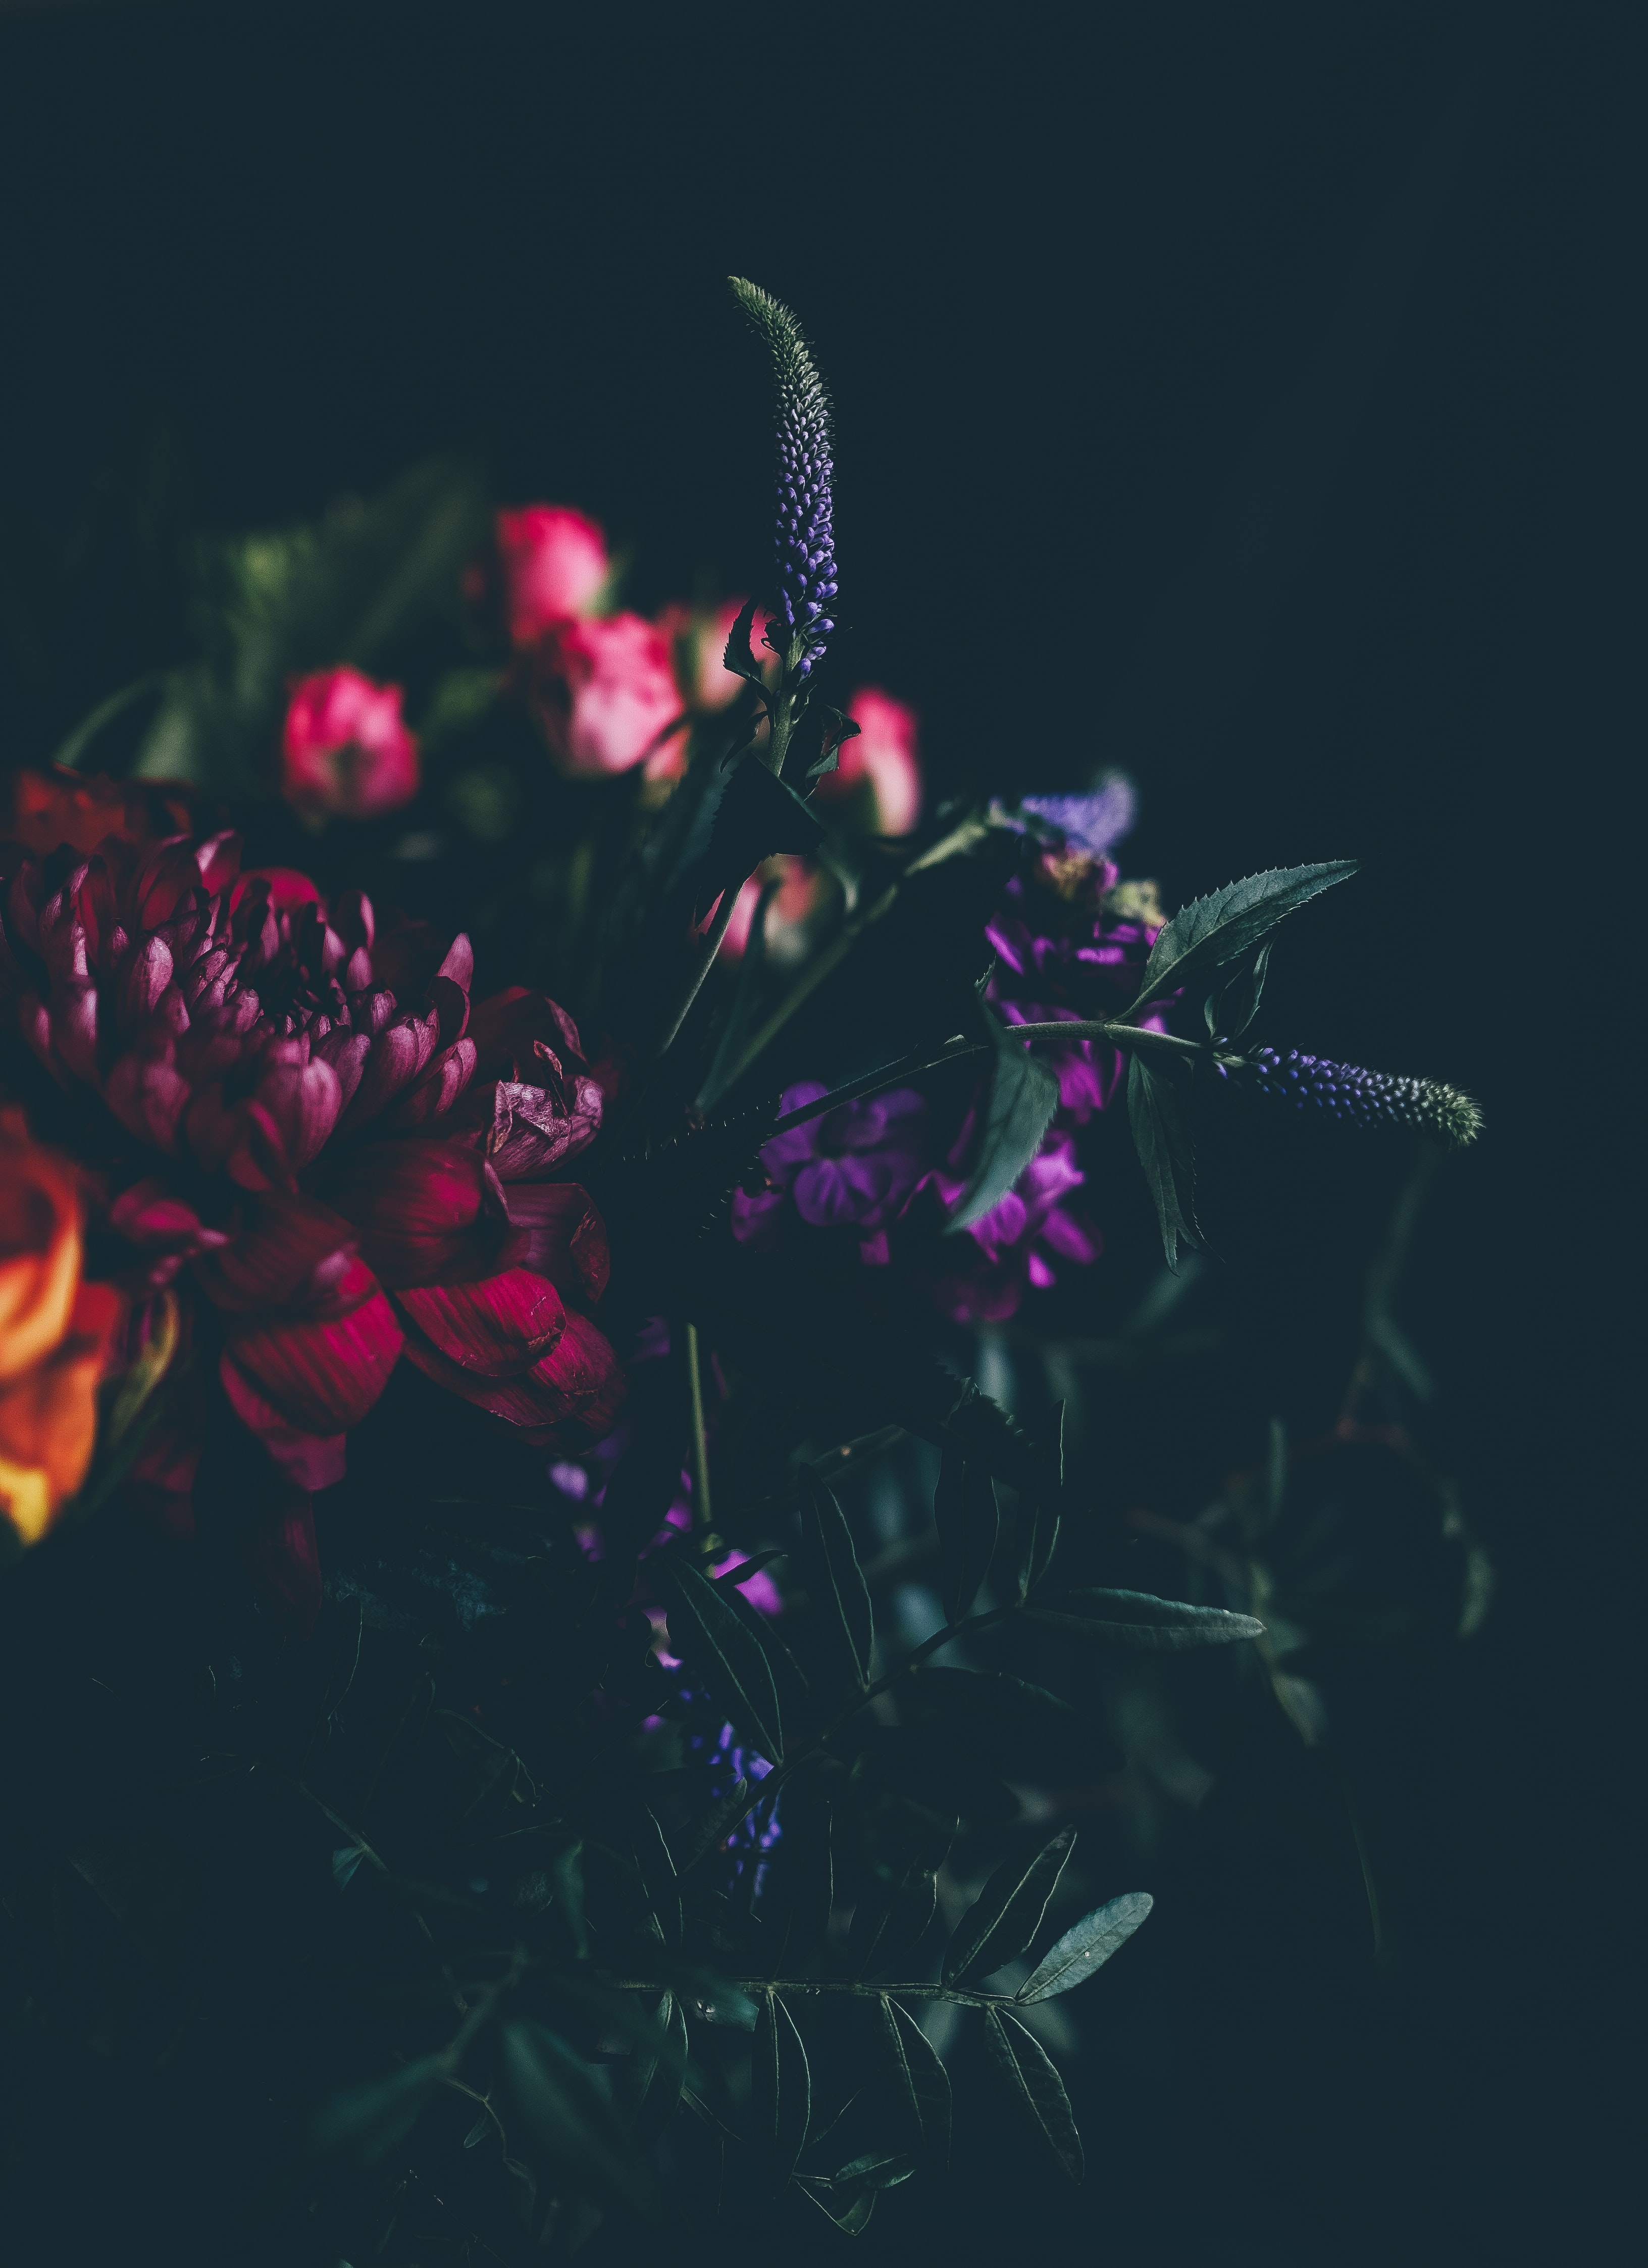 A dim shot of various flowers in intense colors